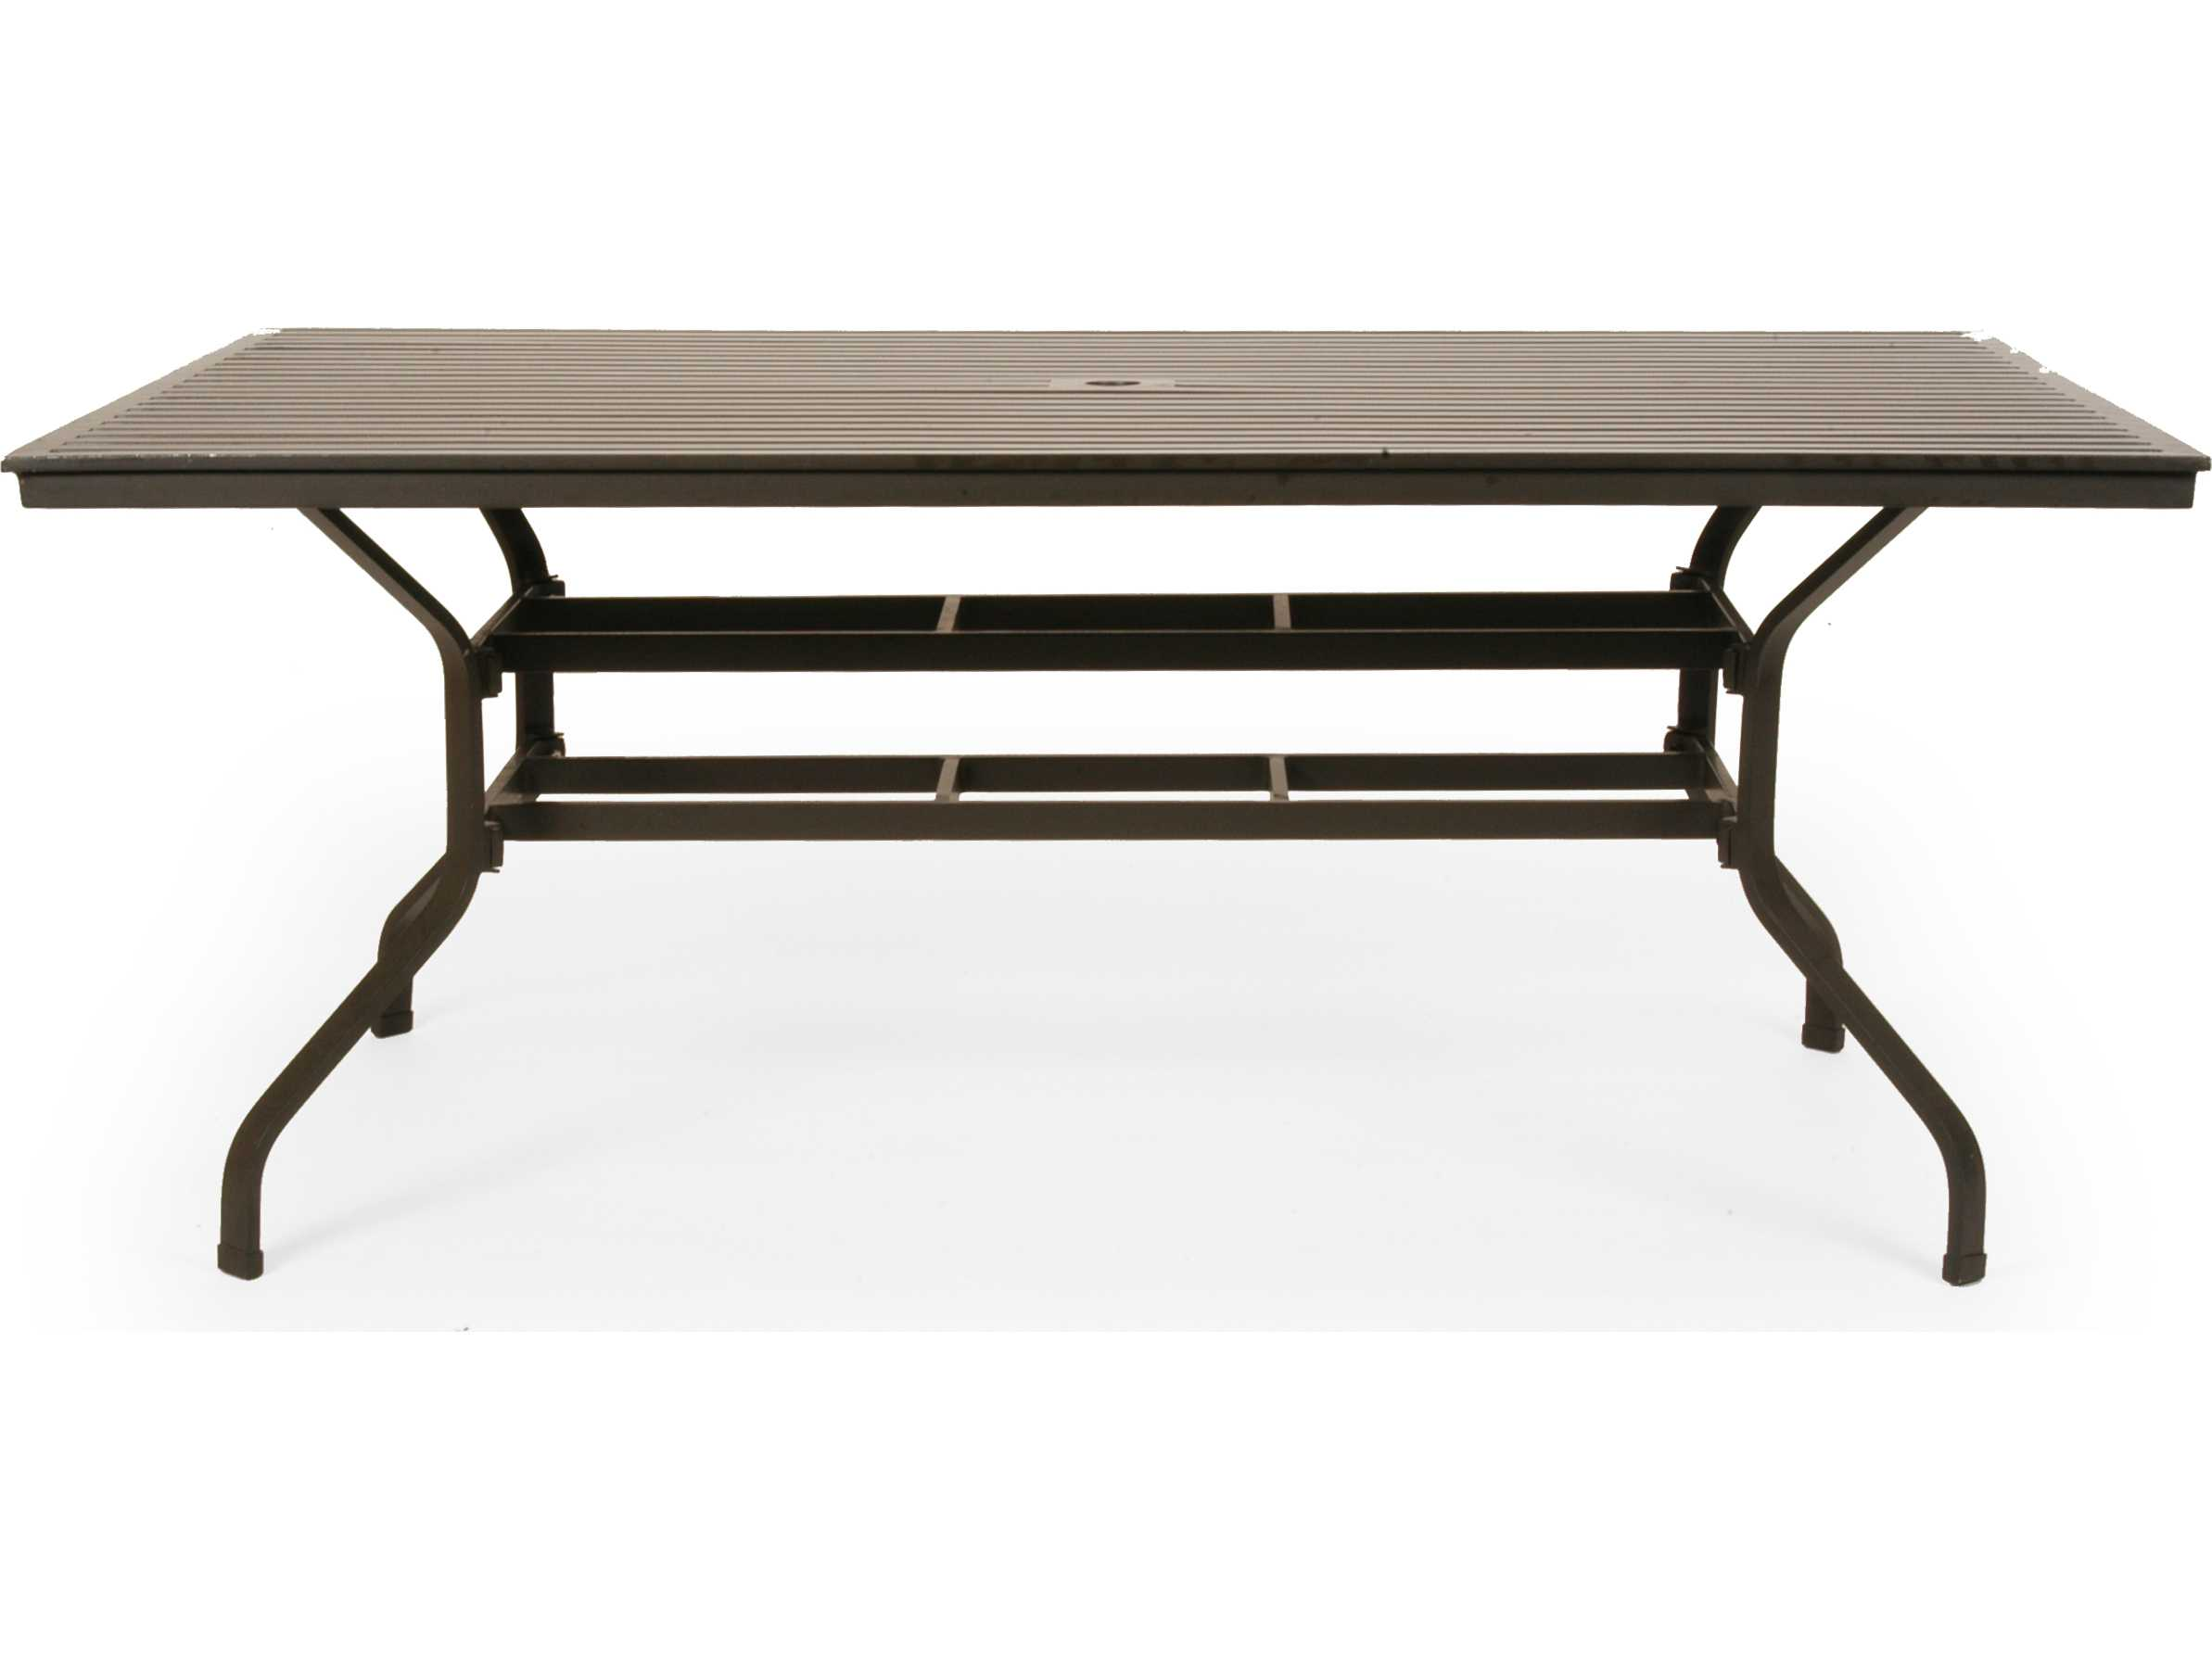 Caluco san michele aluminum 96 x 42 rectangular metal - Aluminium picnic table with umbrella ...